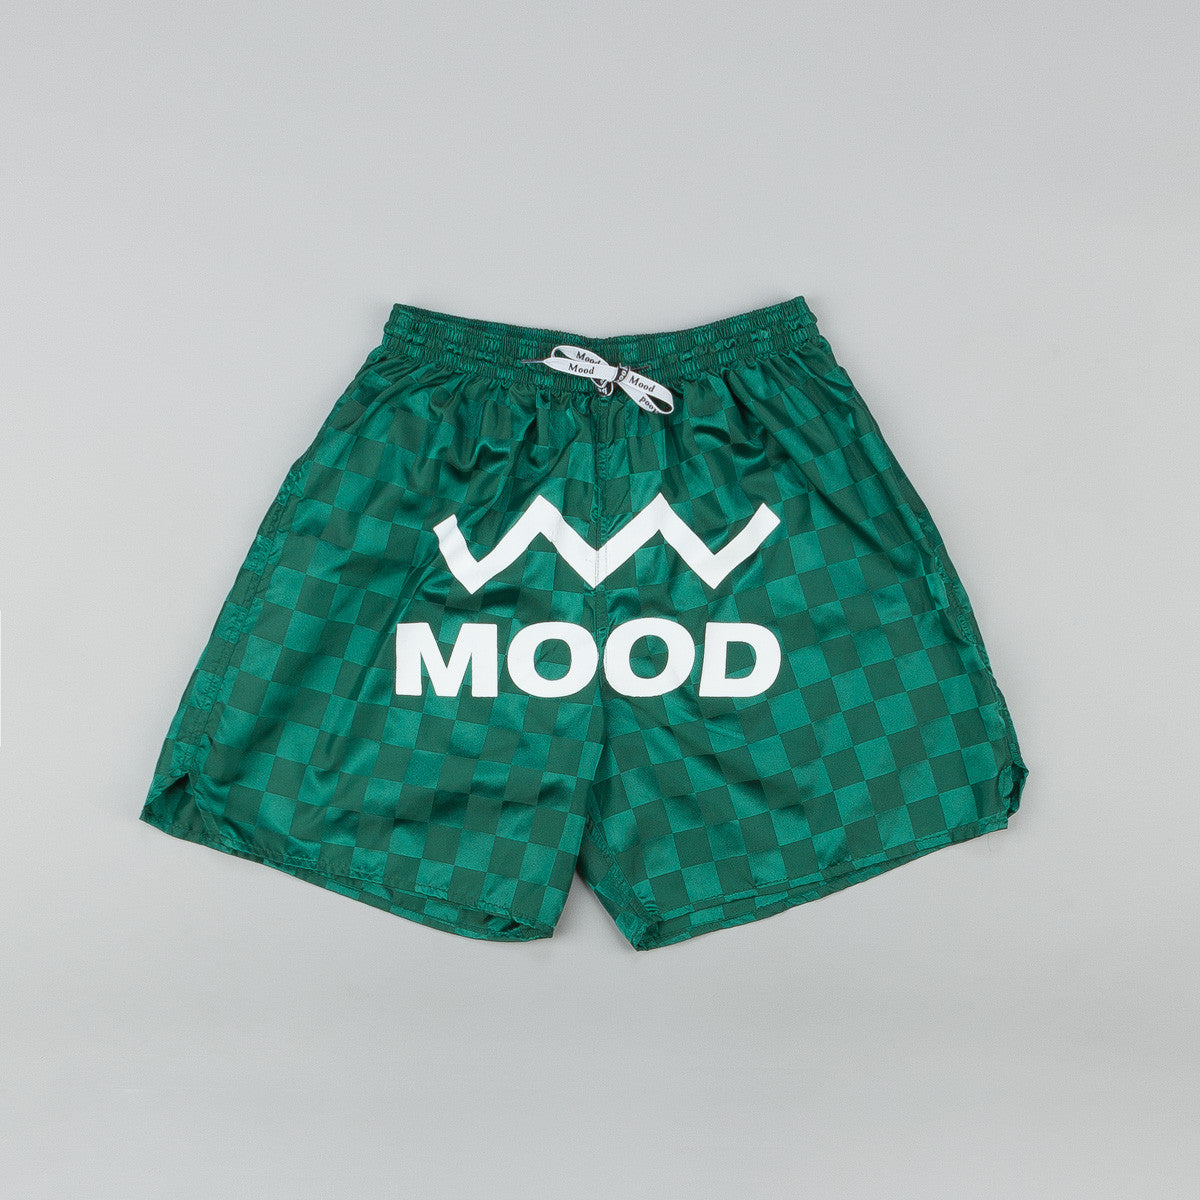 Mood NYC Soccer Club Shorts - Green